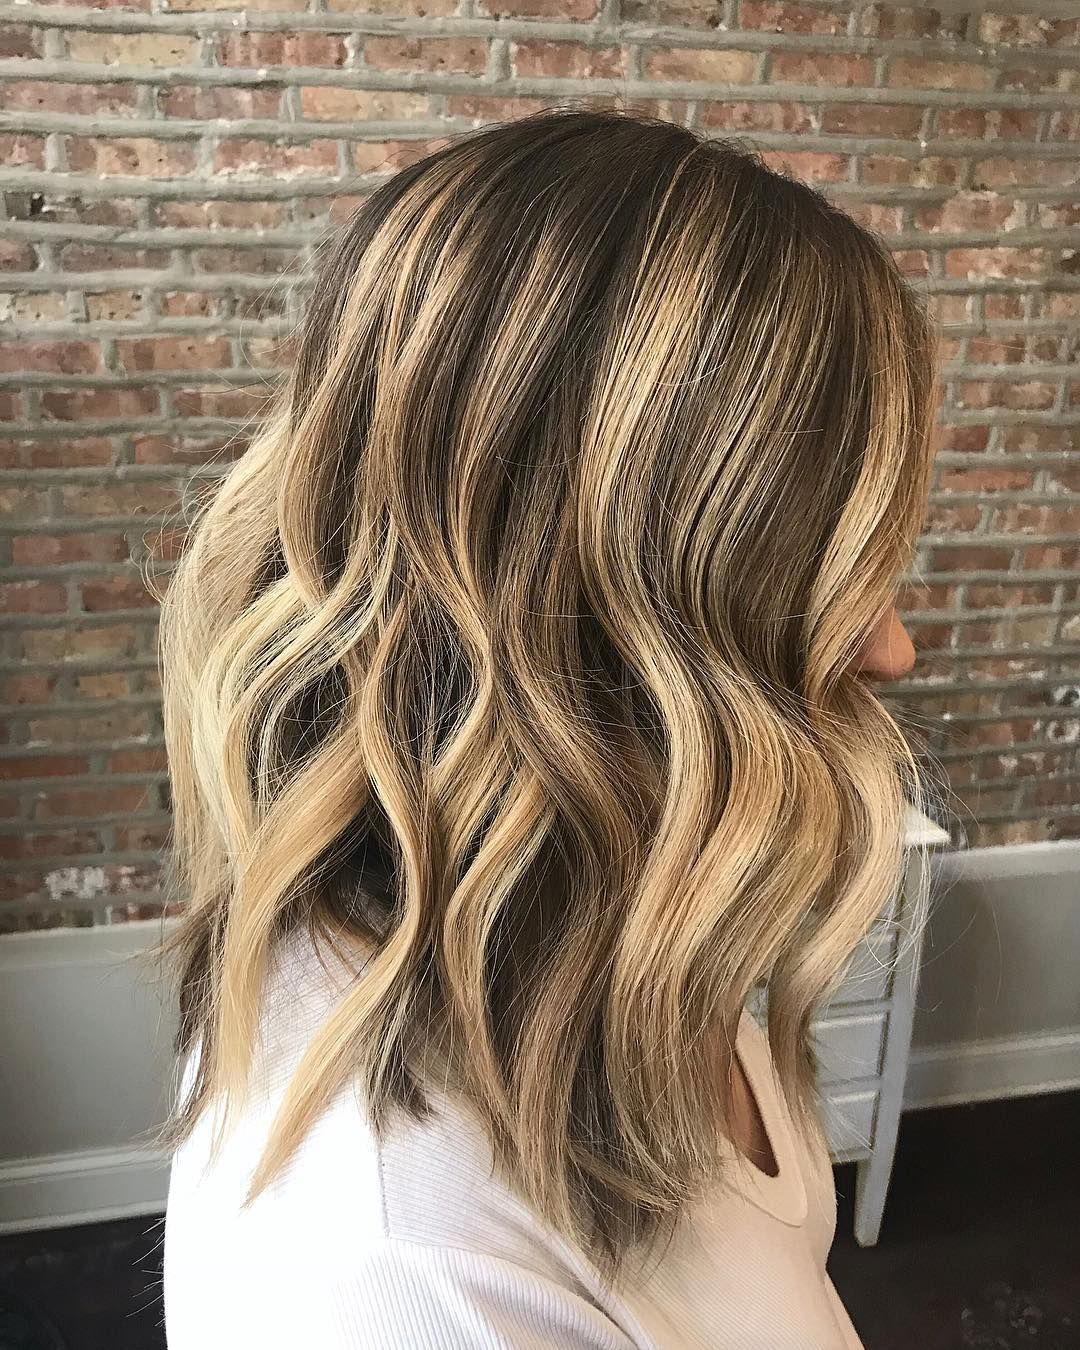 Blonde Ombre Hair Color Ideas To Try 1 Top Ideas To Try Recipes